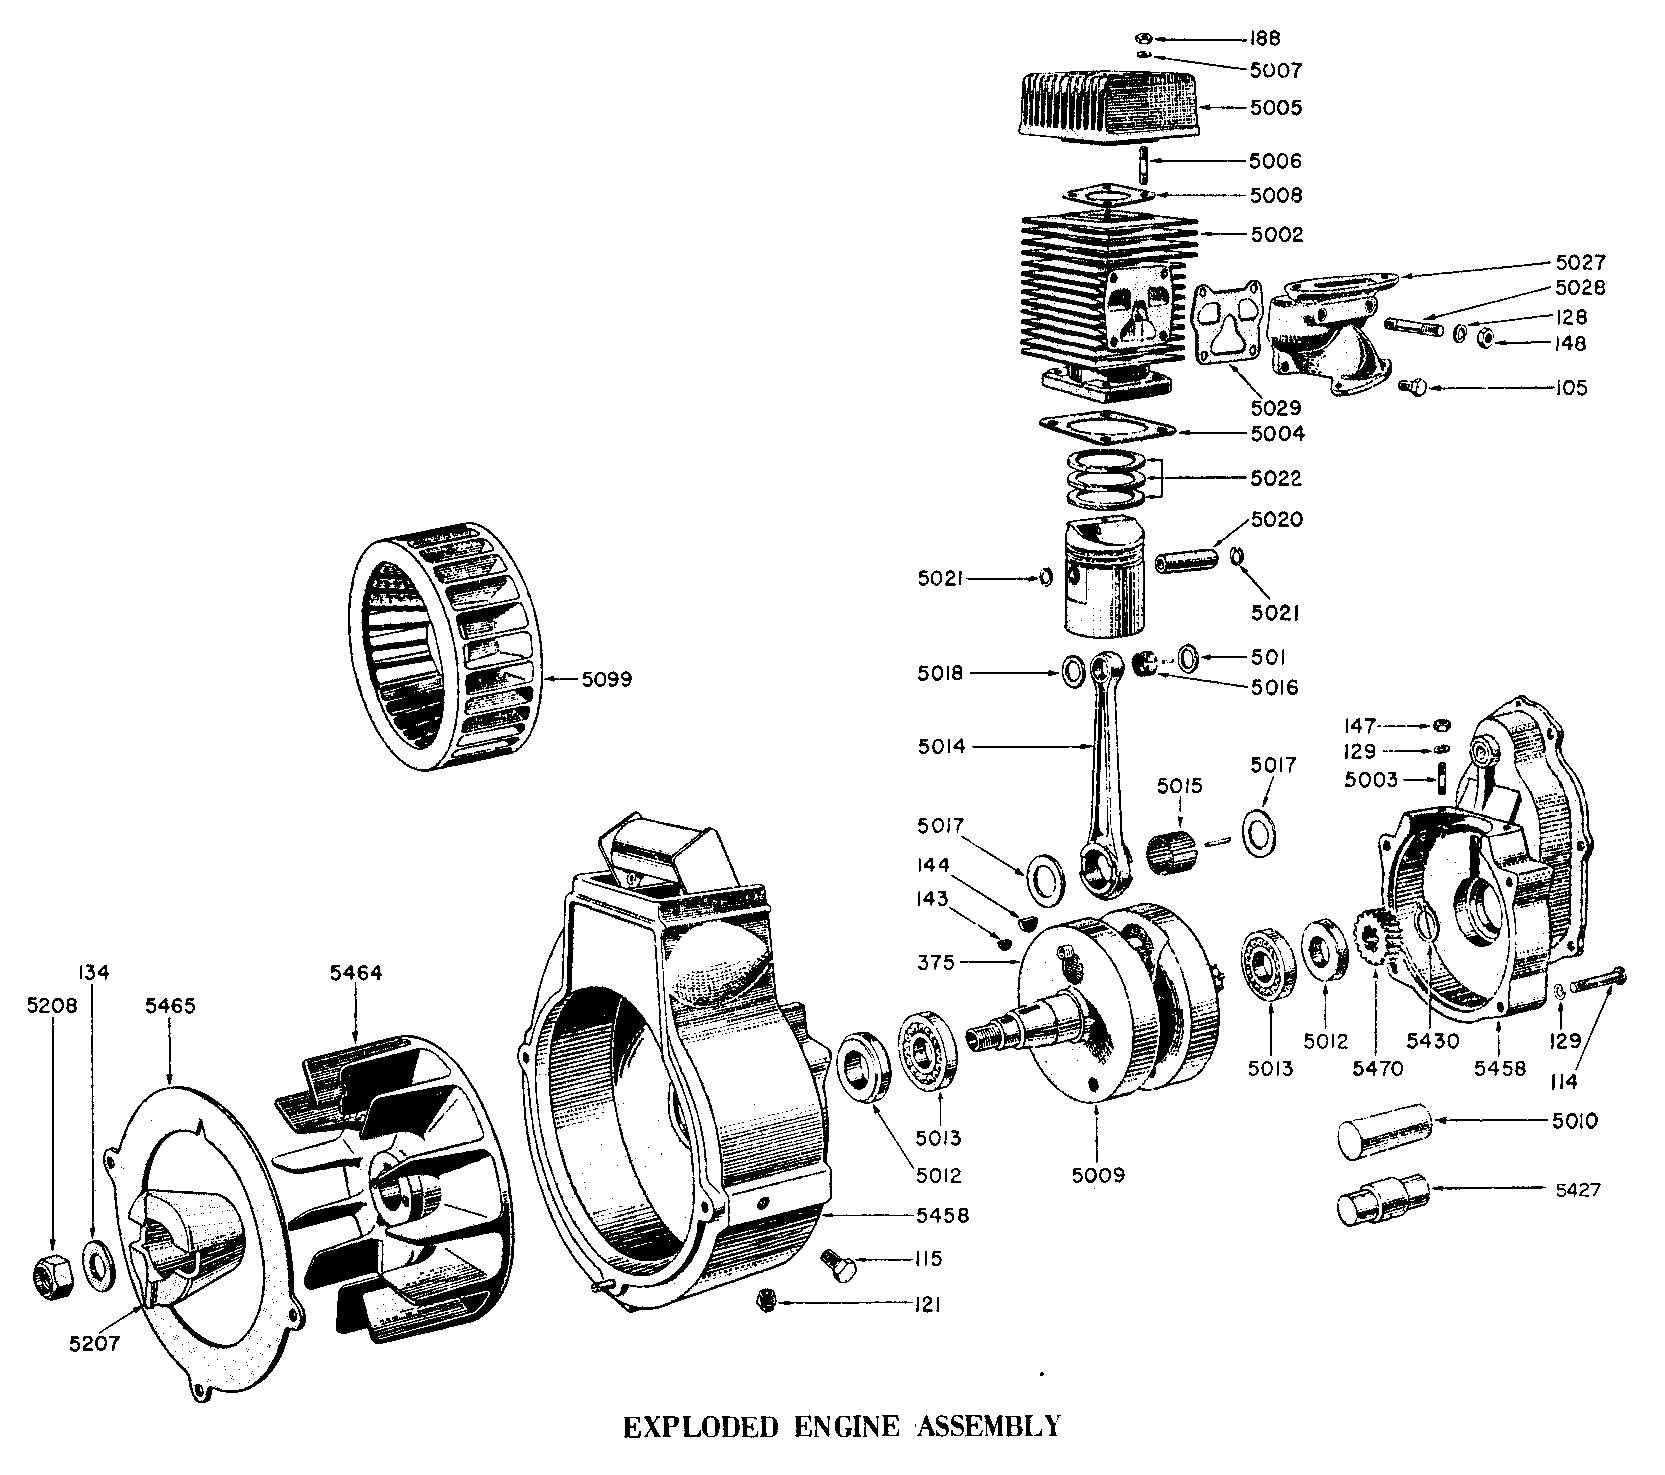 engine parts diagrams engine automotive wiring diagrams description engine engine parts diagrams